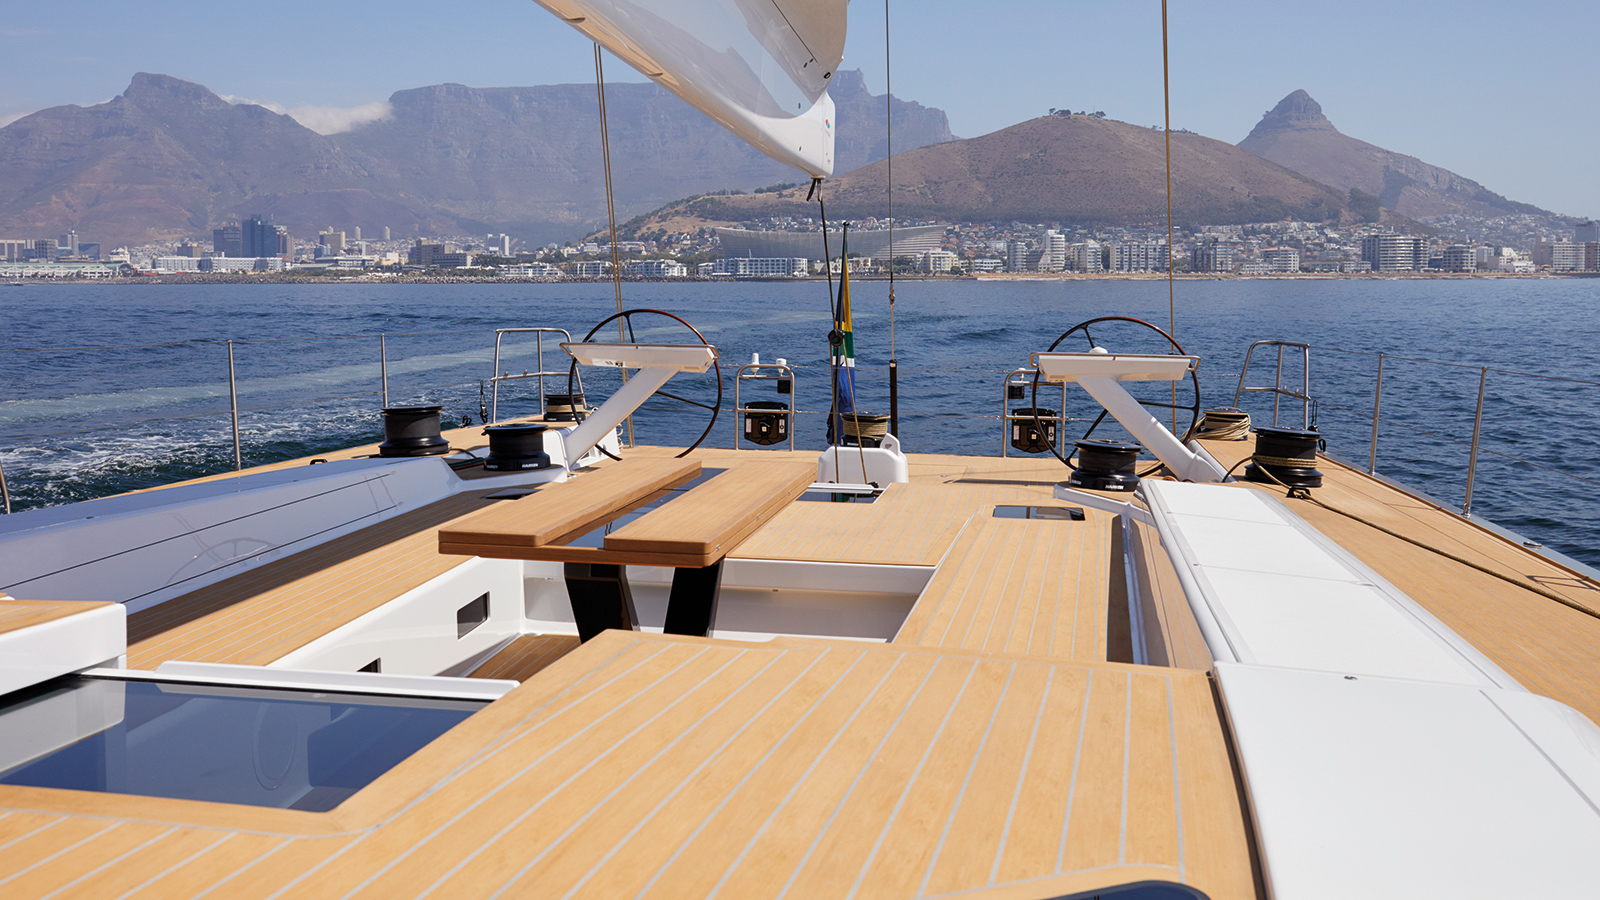 the-deck-layout-of-the-custom-sailing-yacht-SW-RP90-by-southern-wind